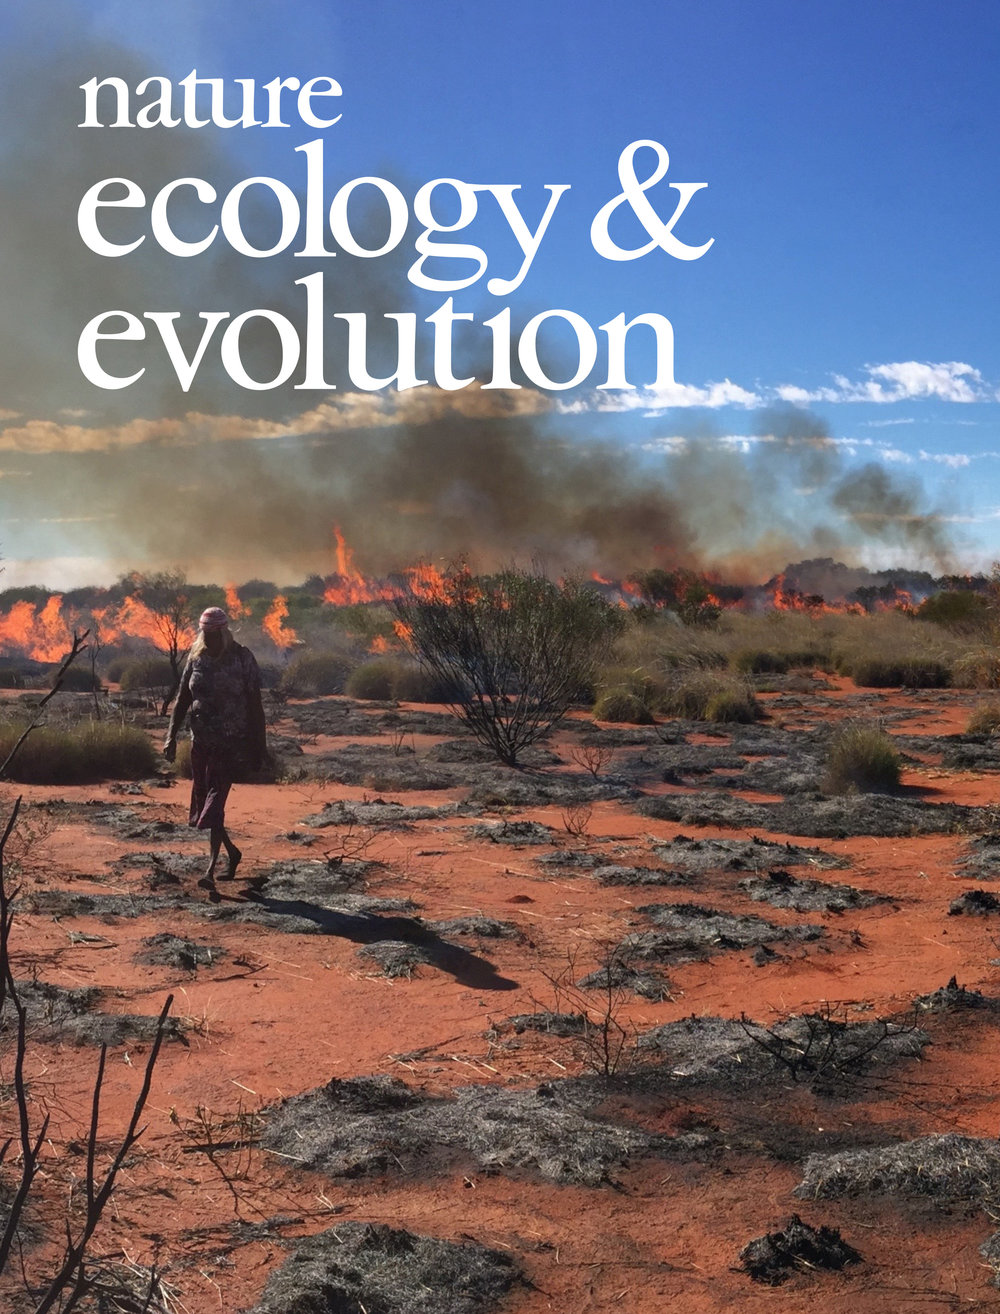 Nature Ecology & Evolution  cover for  Sullivan et al. 2017 . Cover photo by Douglas Bird.